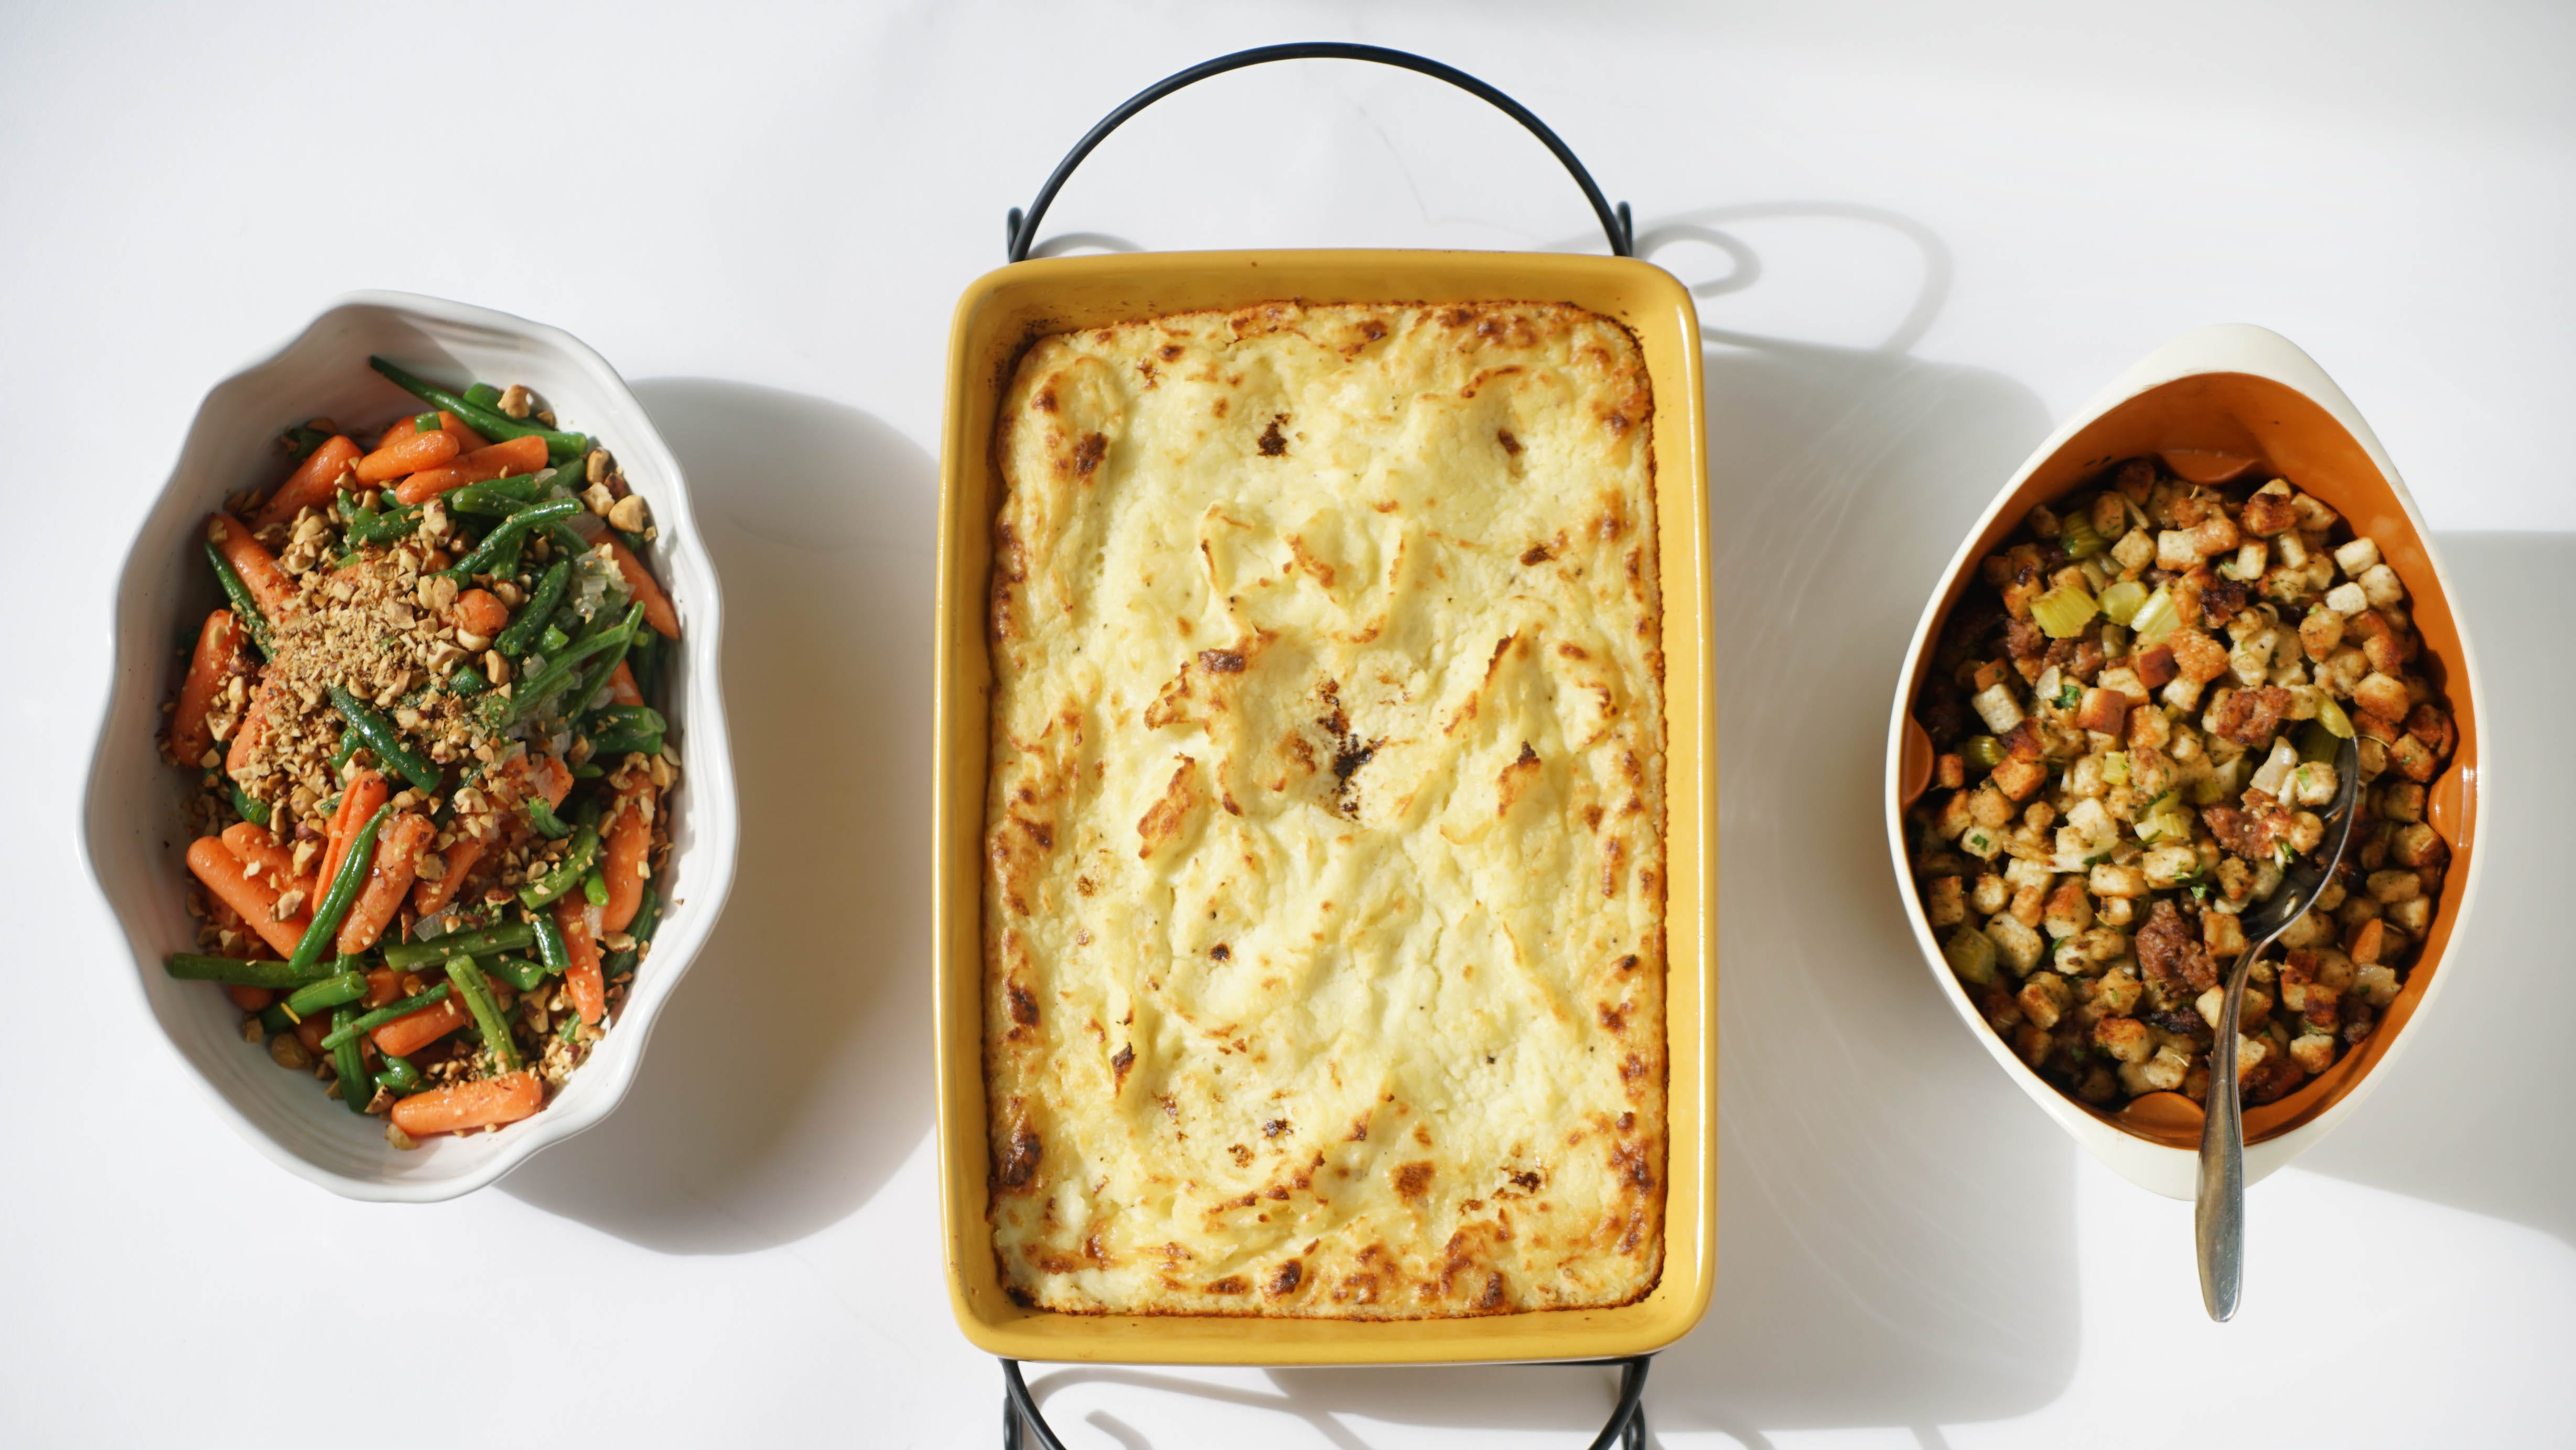 Surefire Thanksgiving from expert Rick Rodgers: Make-ahead mashed potatoes, chutney